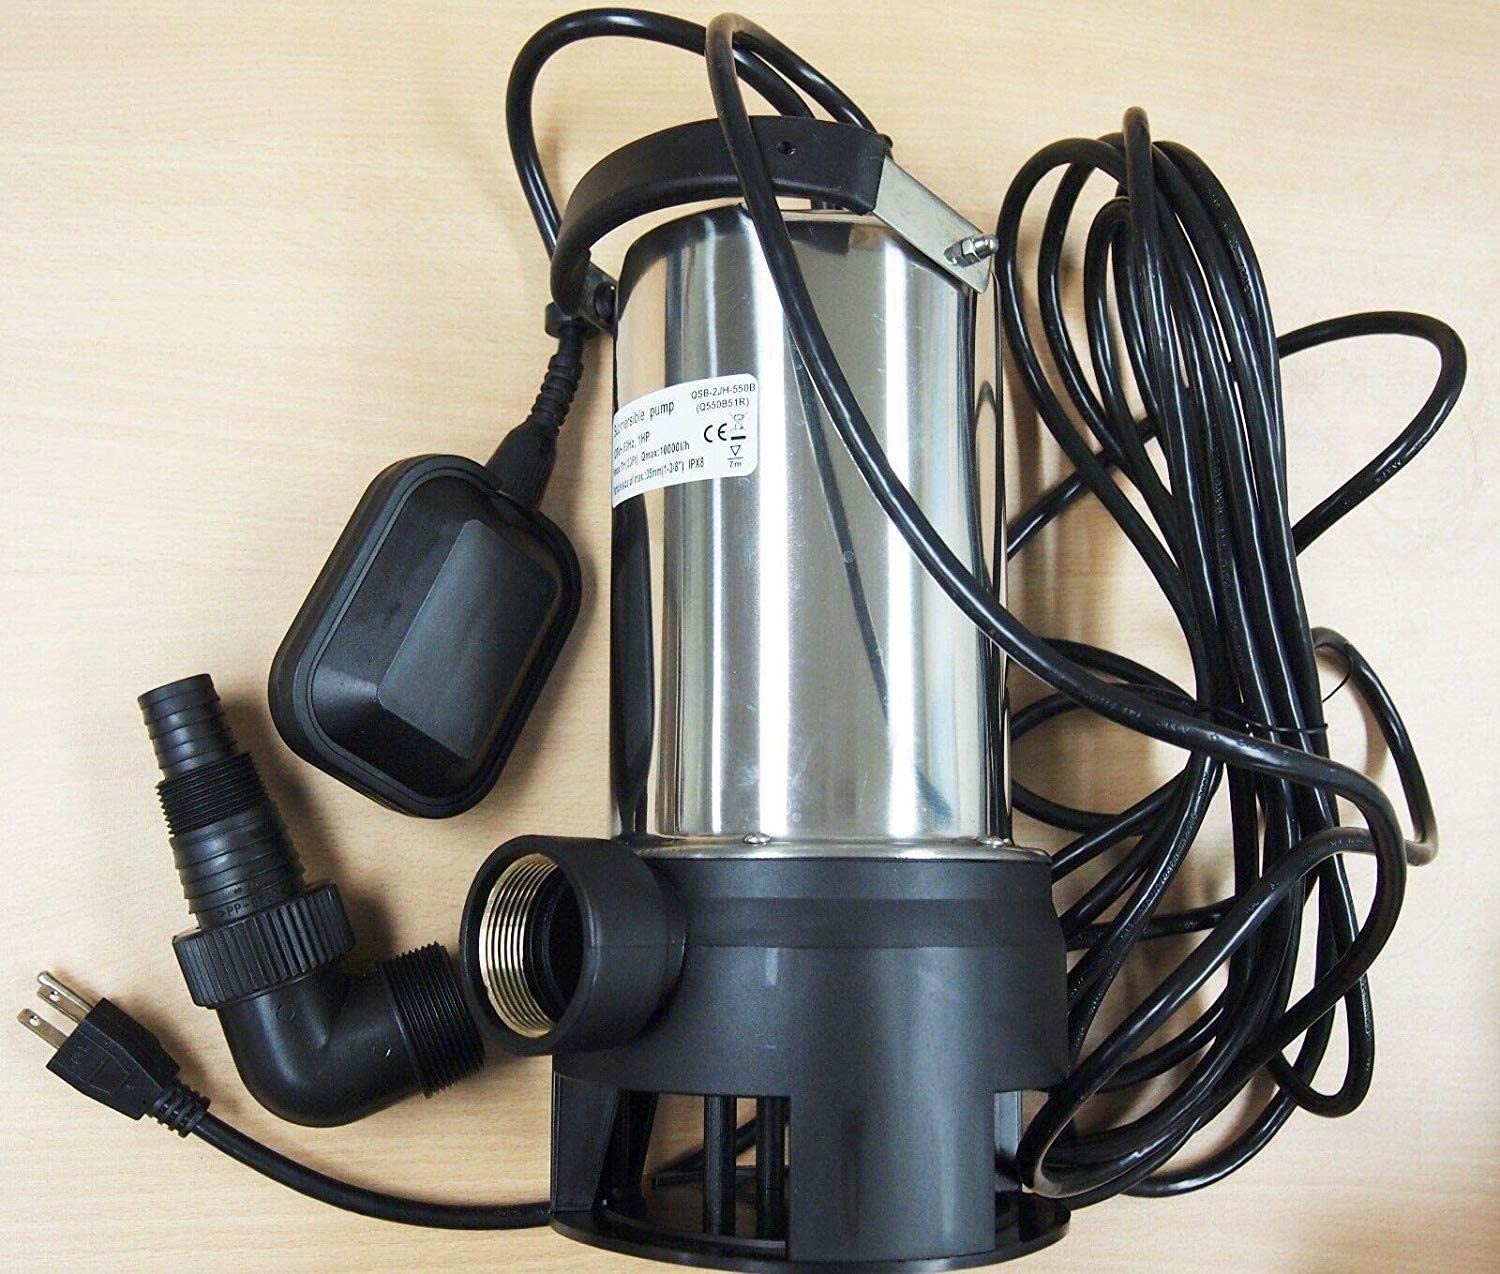 FXDJH Submersible Water Pump Submersible Water Pump Stainless Steel 1HP 10000 L//H Trash Clean Water Flooding Submersible Pump